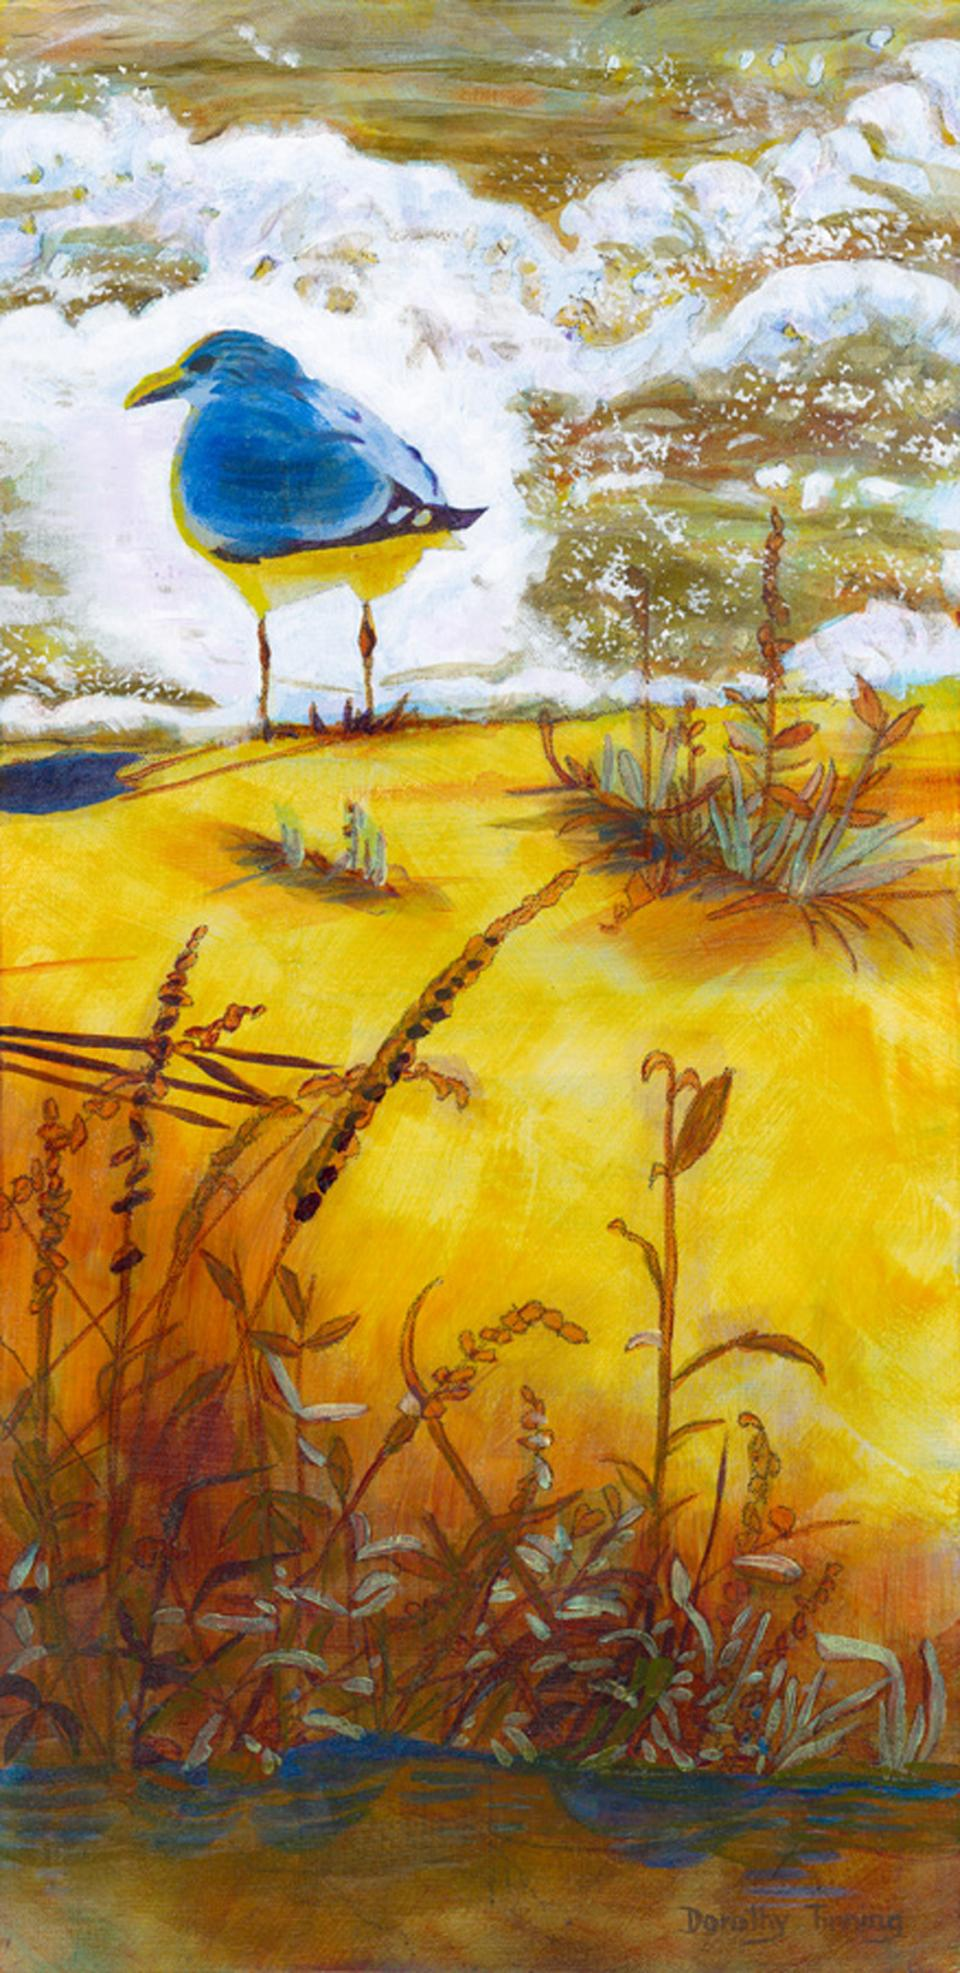 Add Artwork | Wallhanging by Dorothy Tinning | Artists for Conservation